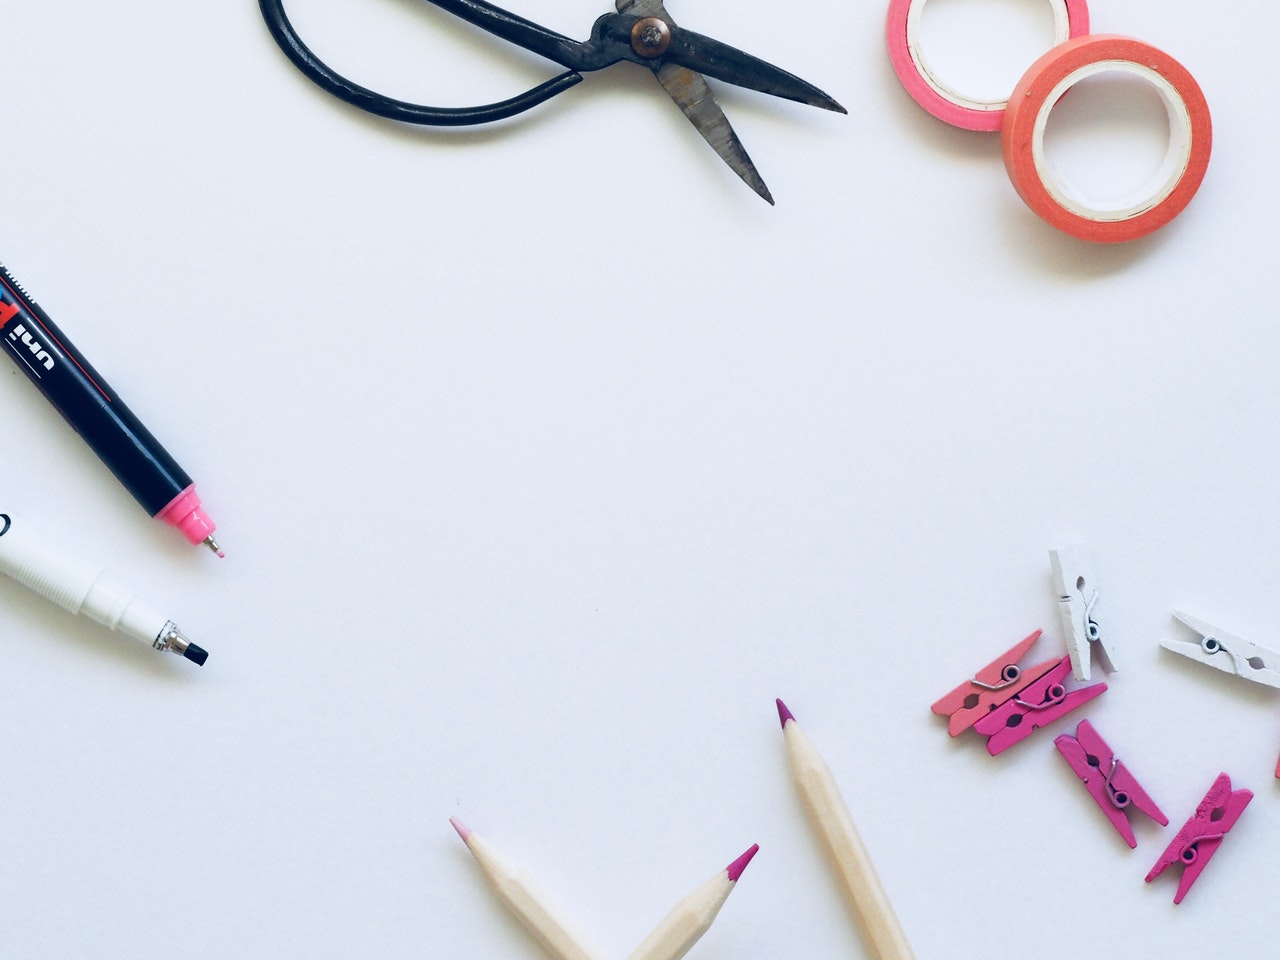 Comment customiser ses fournitures scolaires ?